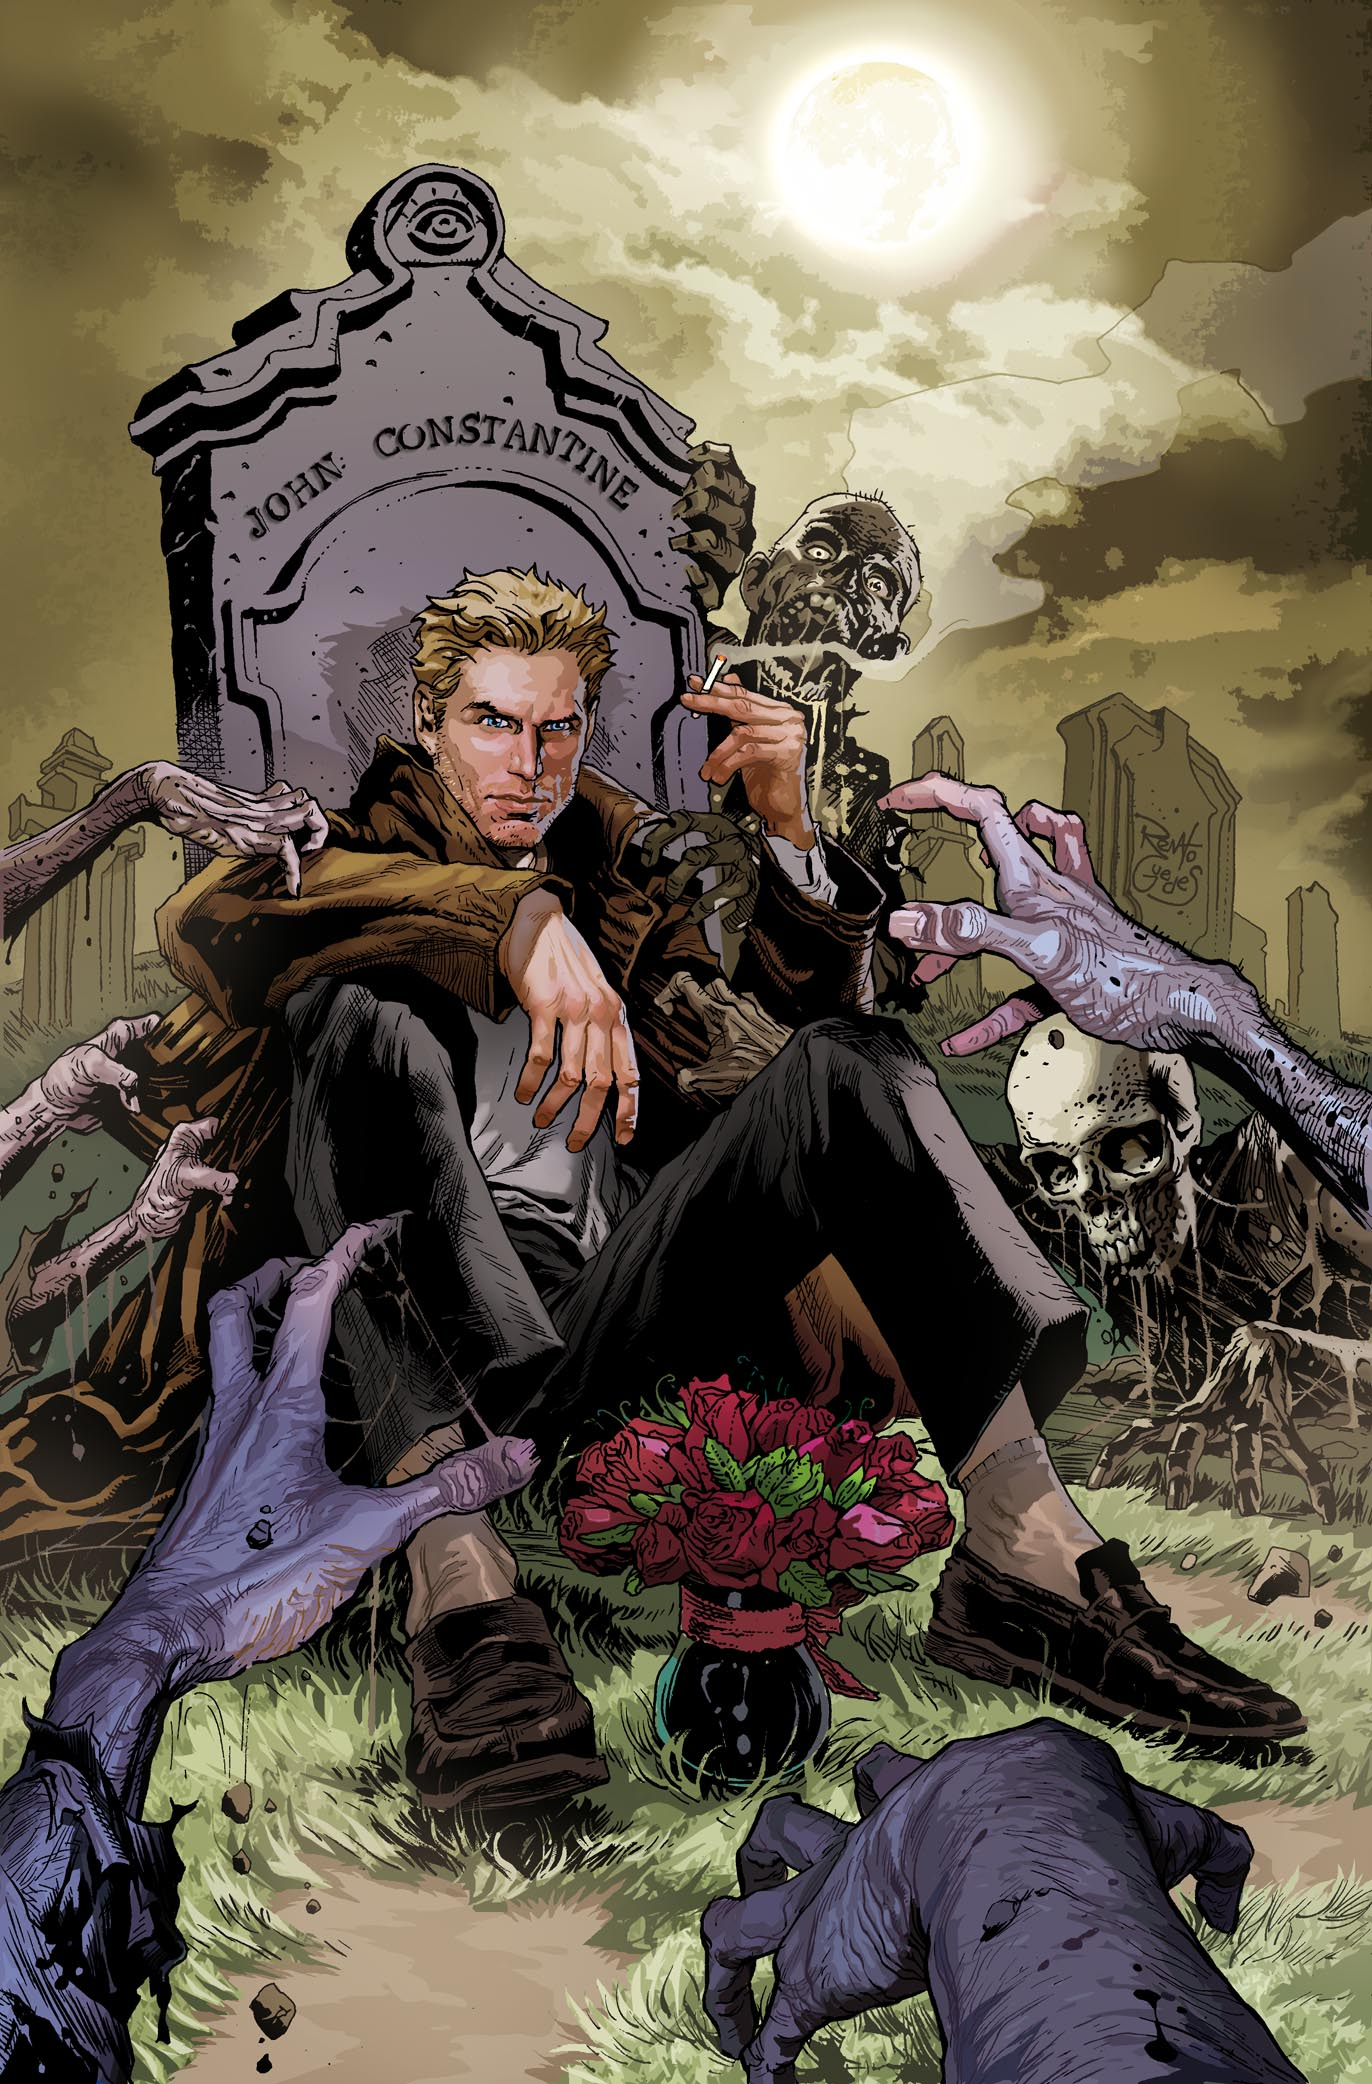 constantine_vol_1_1_textless_variant-first-look-at-constantine-is-everything-you-could-hope-for